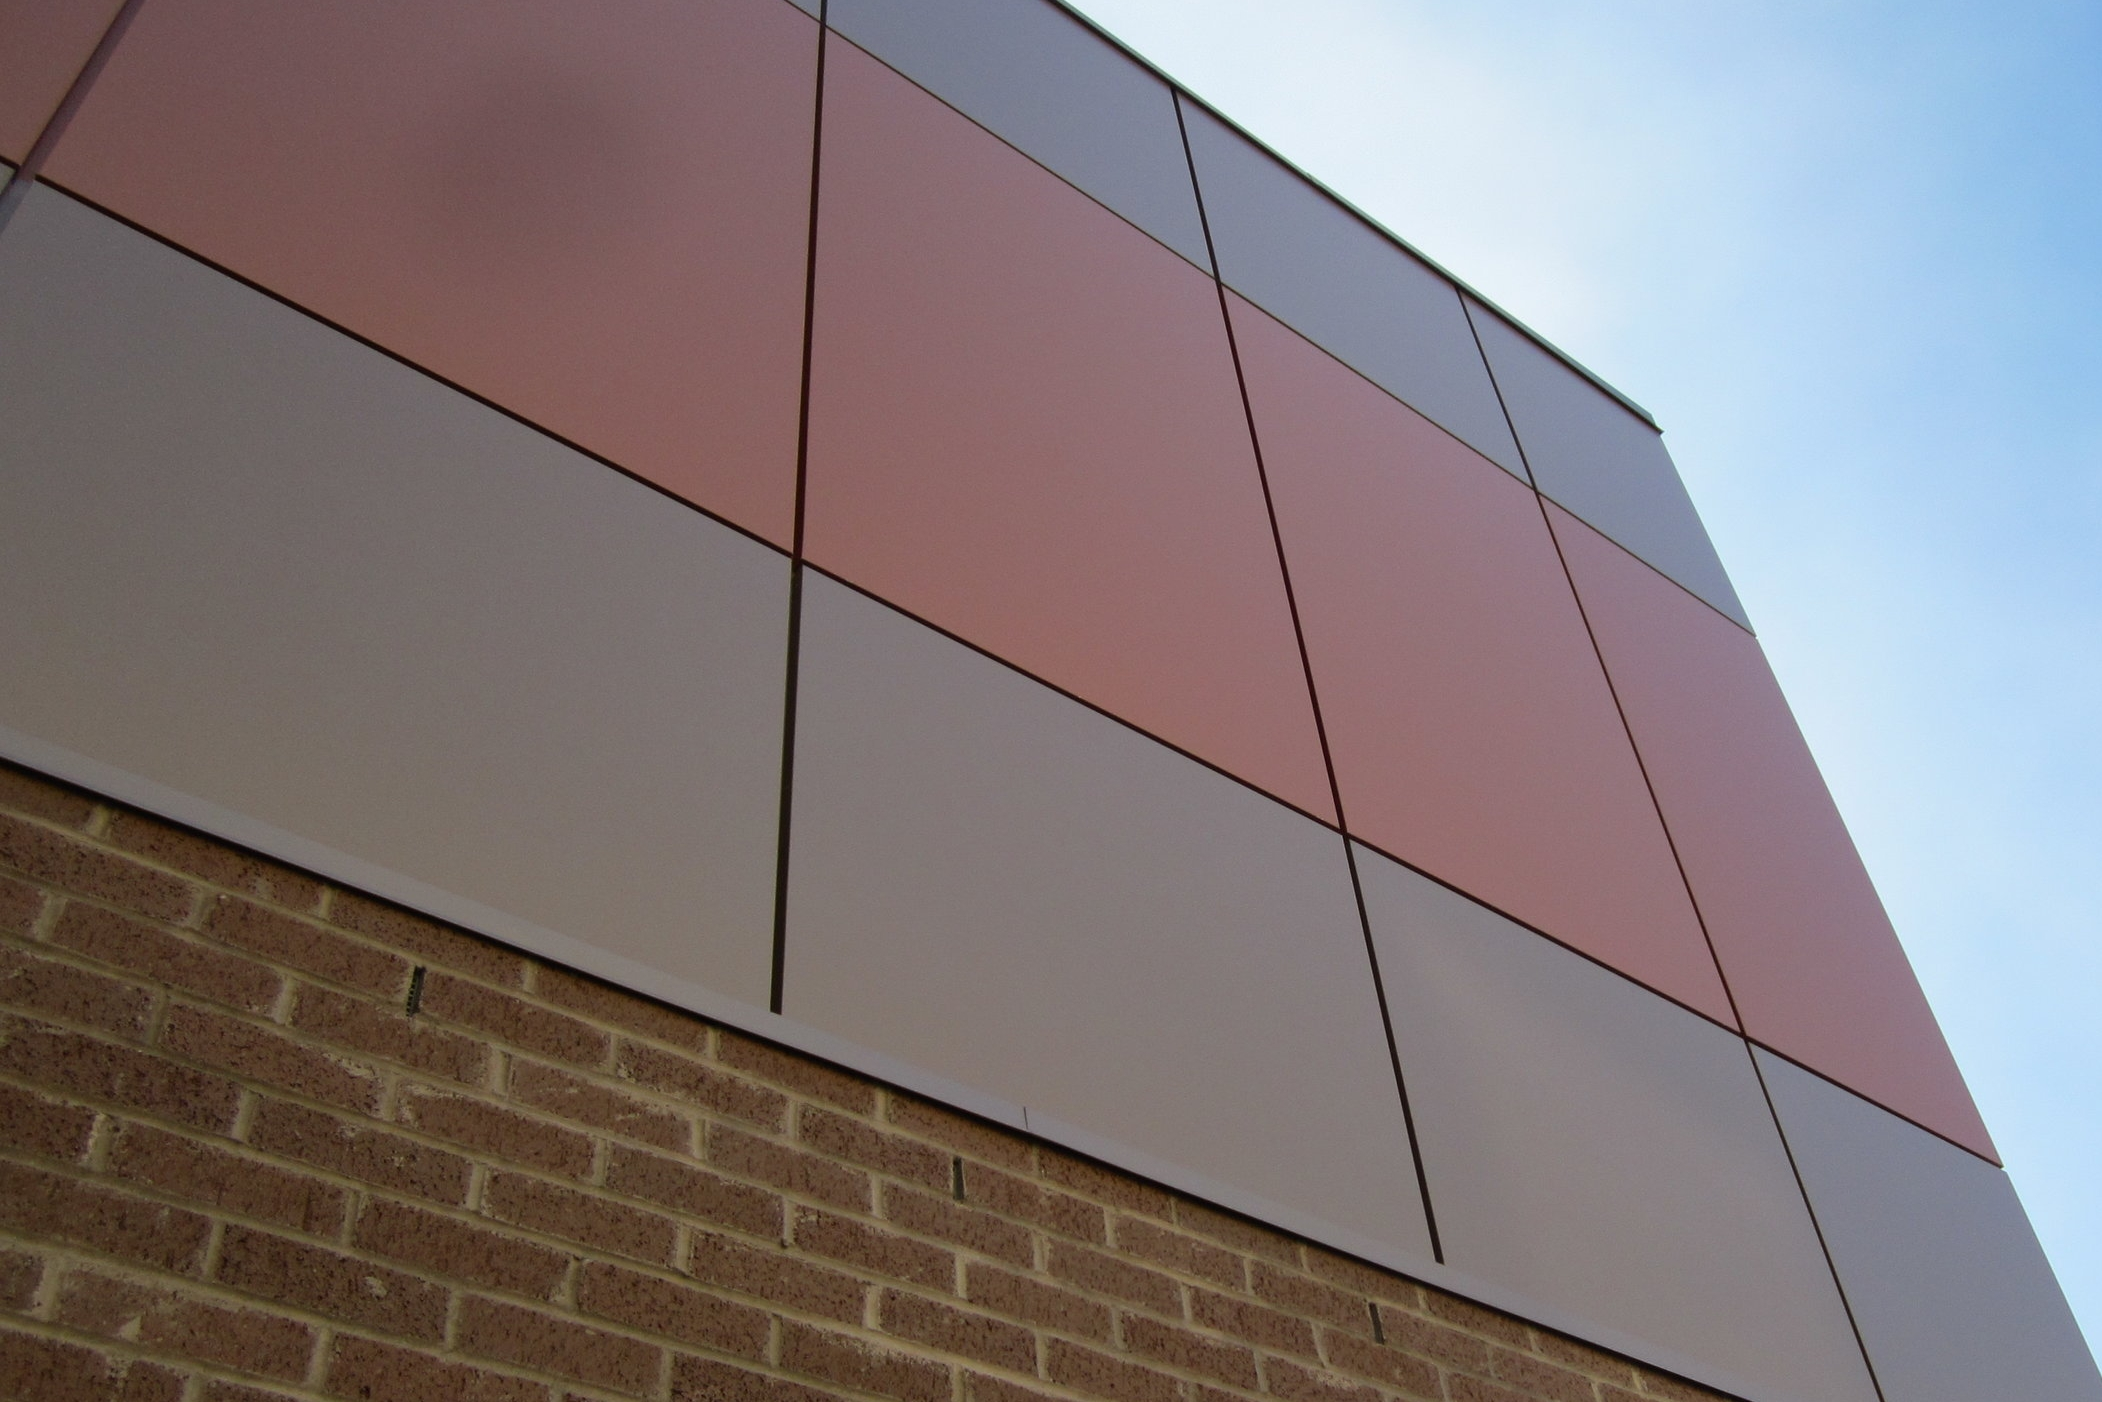 ACM SERIES SYSTEM - ALUMINUM COMPOSITE PANEL SYSTEMSACM Series panels allow for larger surface area coverage than aluminum panels and can be lightweight. ACM panels offer excellent weather resistance and a very long lifespan.